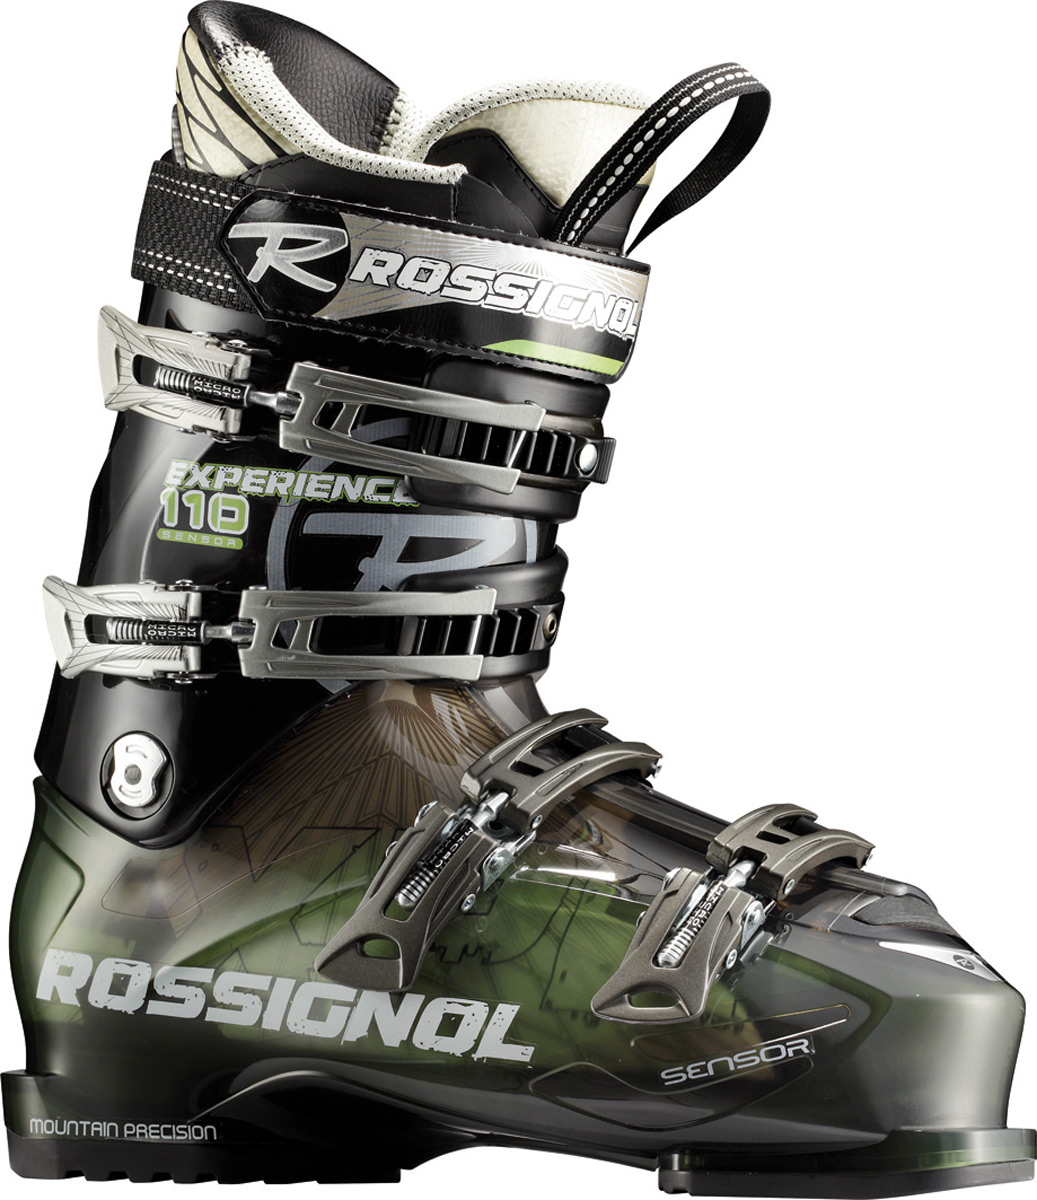 "Ski Sensor boots have a 104mm ""wide"" fit based on the 100mm sensor. Sensor shells feature a 4mm wider ""v"" shape in he forefoot, preserving the contoured fit, strong heel cup and asymmetrical toe box. Sensor fit liners provide an open instep and accommodating ankle area, increasing comfort, performance and warmth. Available in 110 to 70 flex ranges, sensor boots are perfect for ntermediate to novice skiers who want confident all- mountain performance and a generous fit.Key Features of the Rossignol Experience Sensor 110 Ski Boots: Sensor fit liner: focuses on solving all of the common problem fit areas Sensor fit simply fits more feet better Easy entry: notches in the plastic along the instep allow for easy entry and exit without compromising four buckle overlap boot performance Neutral stance: delivers more control, better balance and minimizes fatigue Neutral stance includes a laterally neutral cuff, 4.5 degree ramp angle and 14 degree forward lean Sensor shell: uses a boot board that connects the three key receptor points to the boot sole The direct link with the stiffer bi-injected lower shell produces enhanced power, control and feel. Material : polyether Padding : molded pu hard Last : 104 mm Flex : 110 - $319.95"